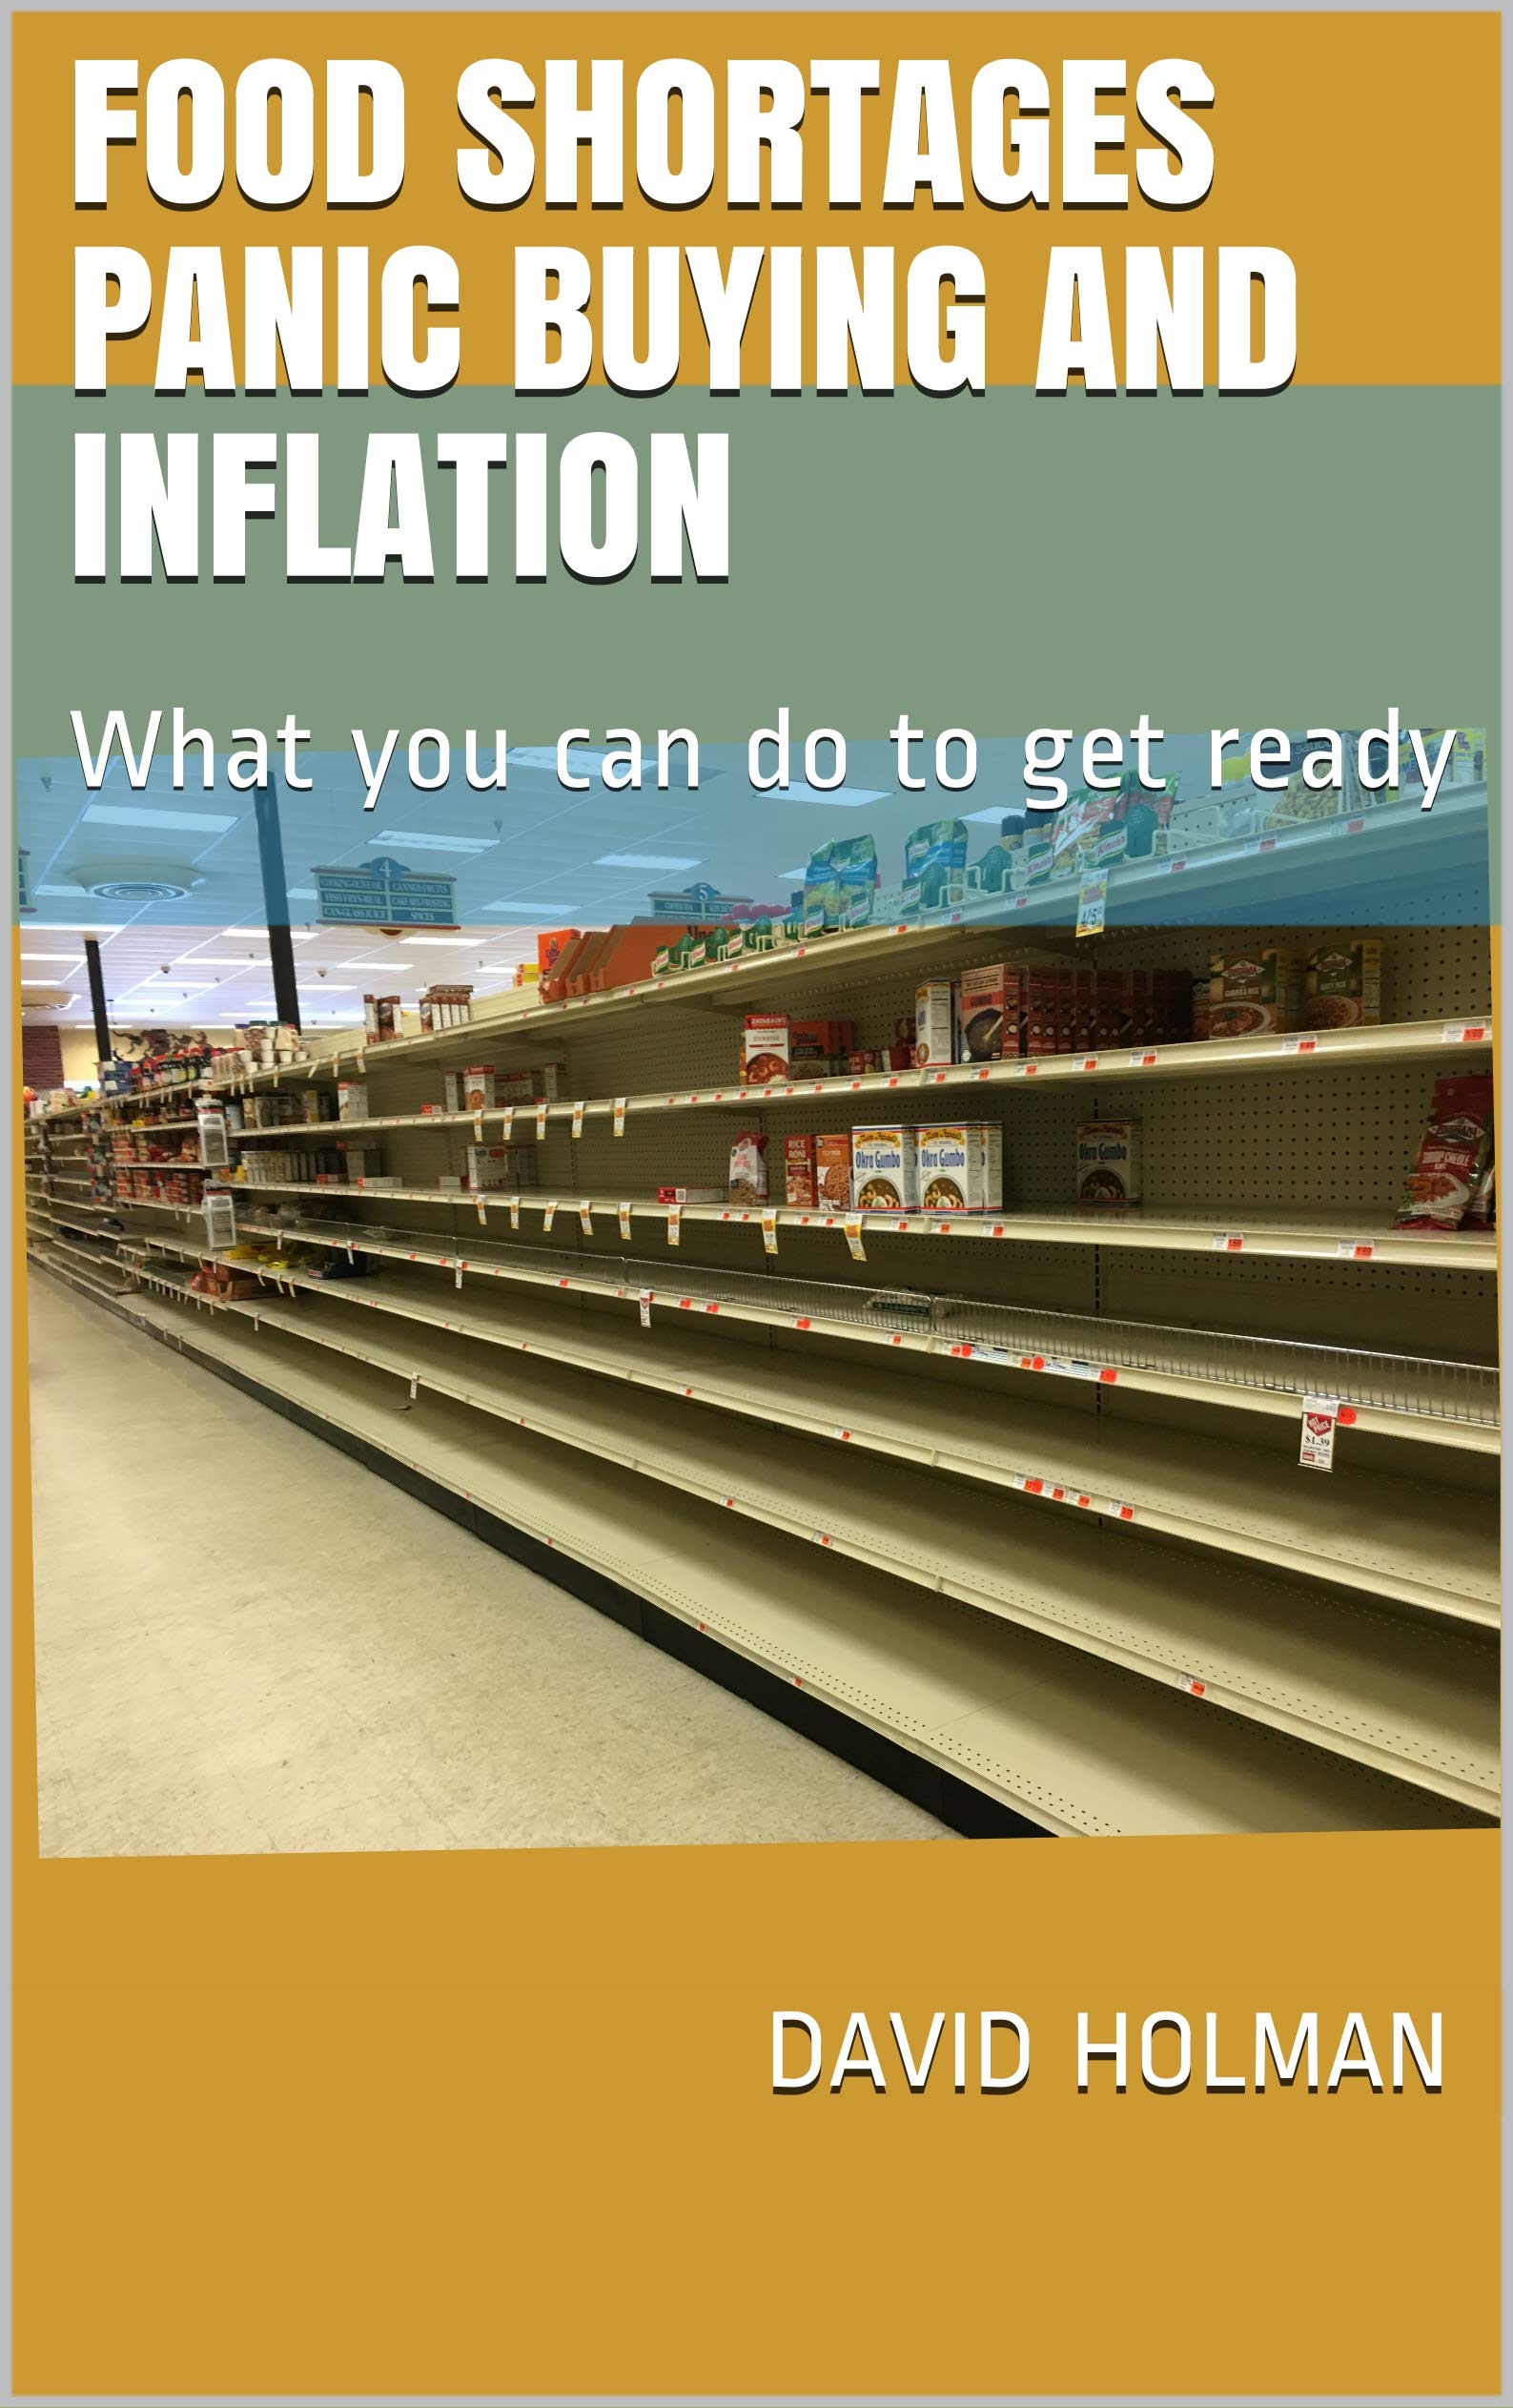 Food Shortages Panic Buying and Inflation: What you can do to get ready